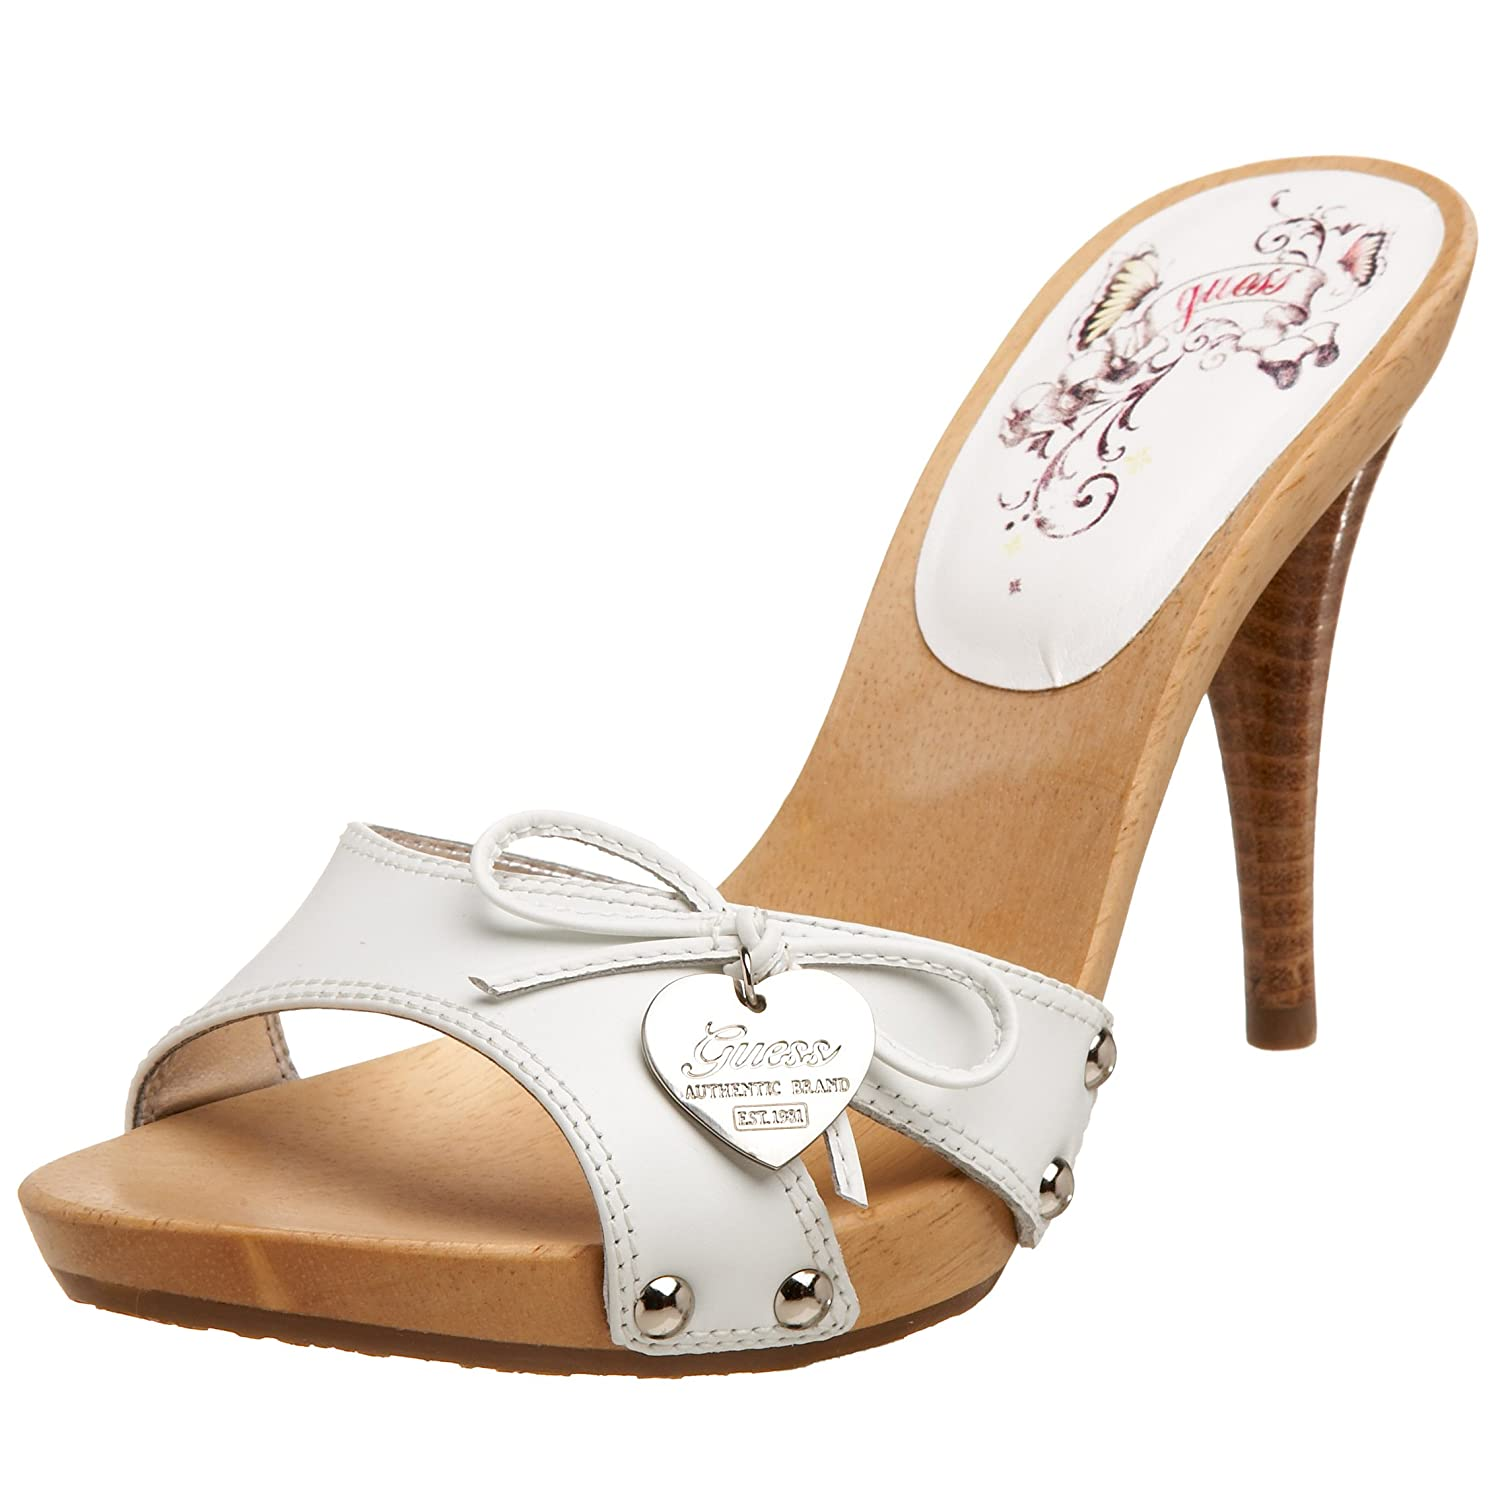 GUESS Women s Shower3 Once Band Wooden Sandal from endless.com